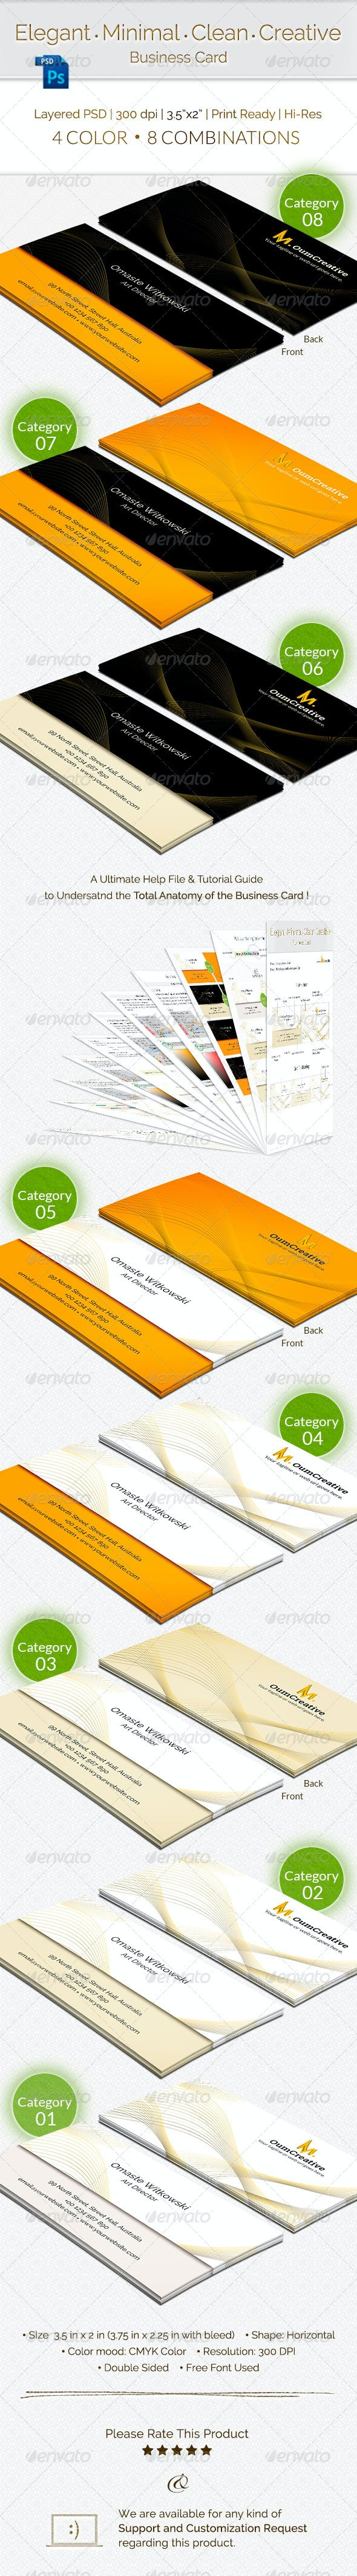 Elegant and Creative Business Card - Creative Business Cards